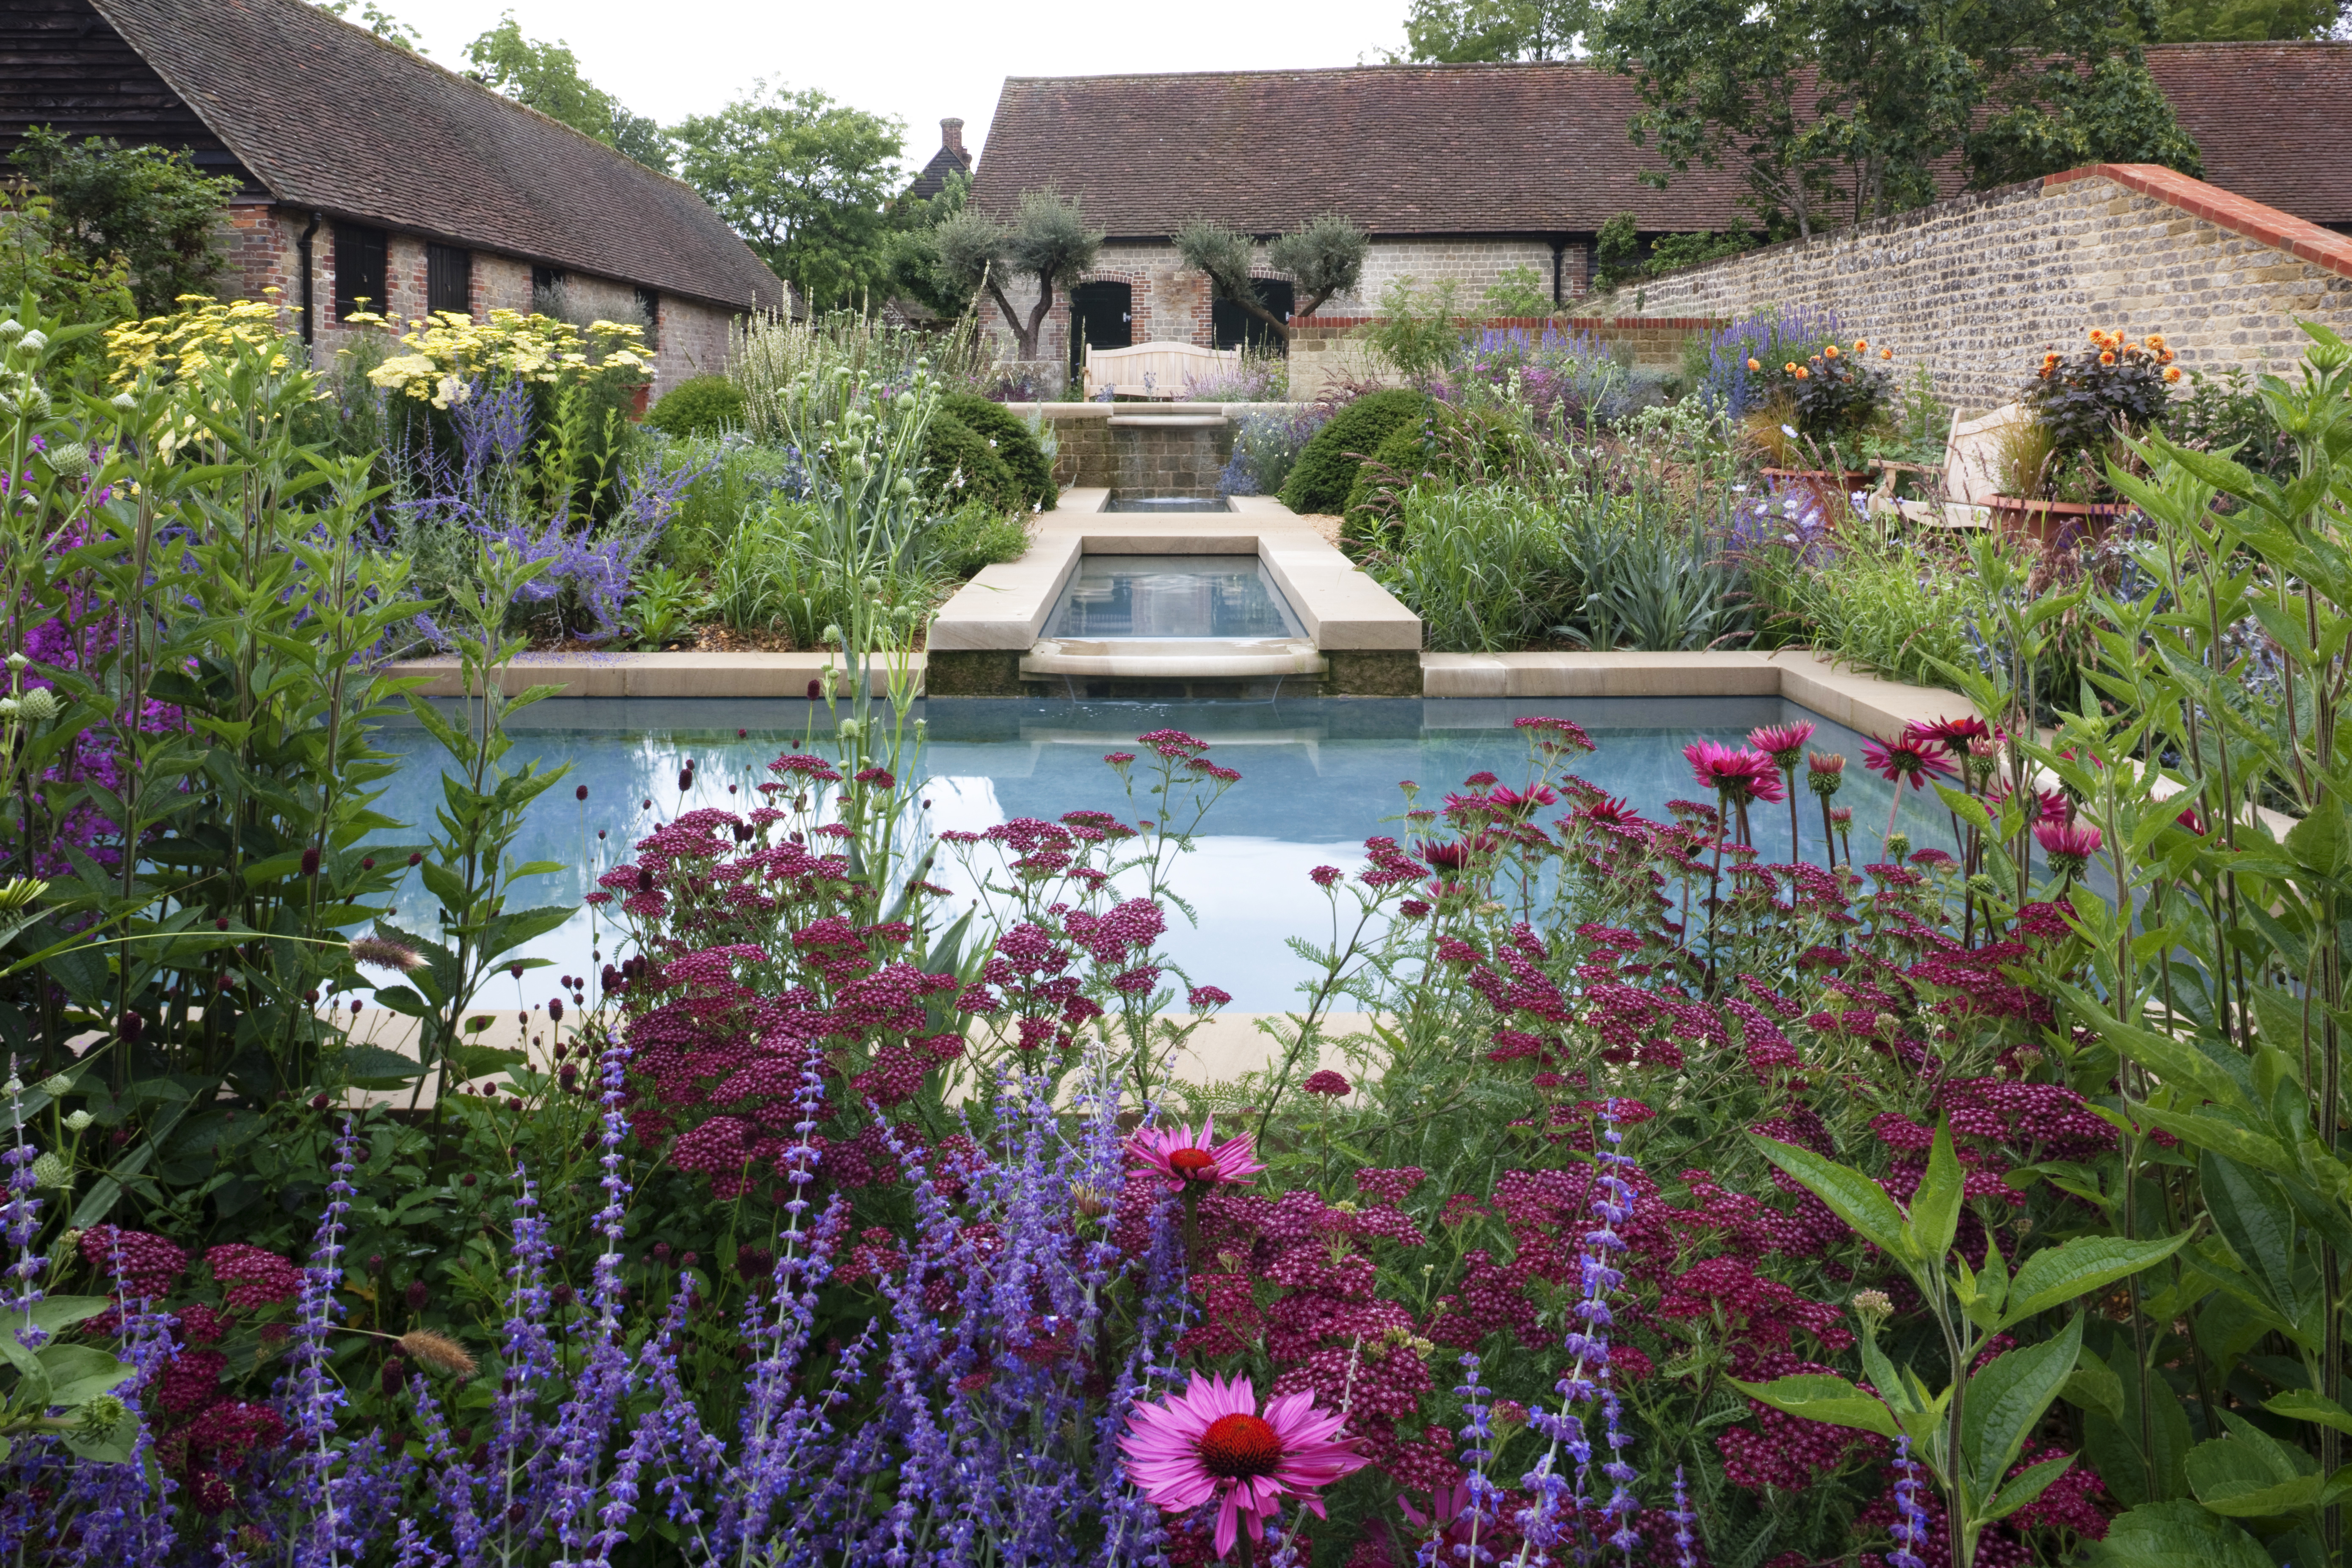 The garden at Woolbeding.